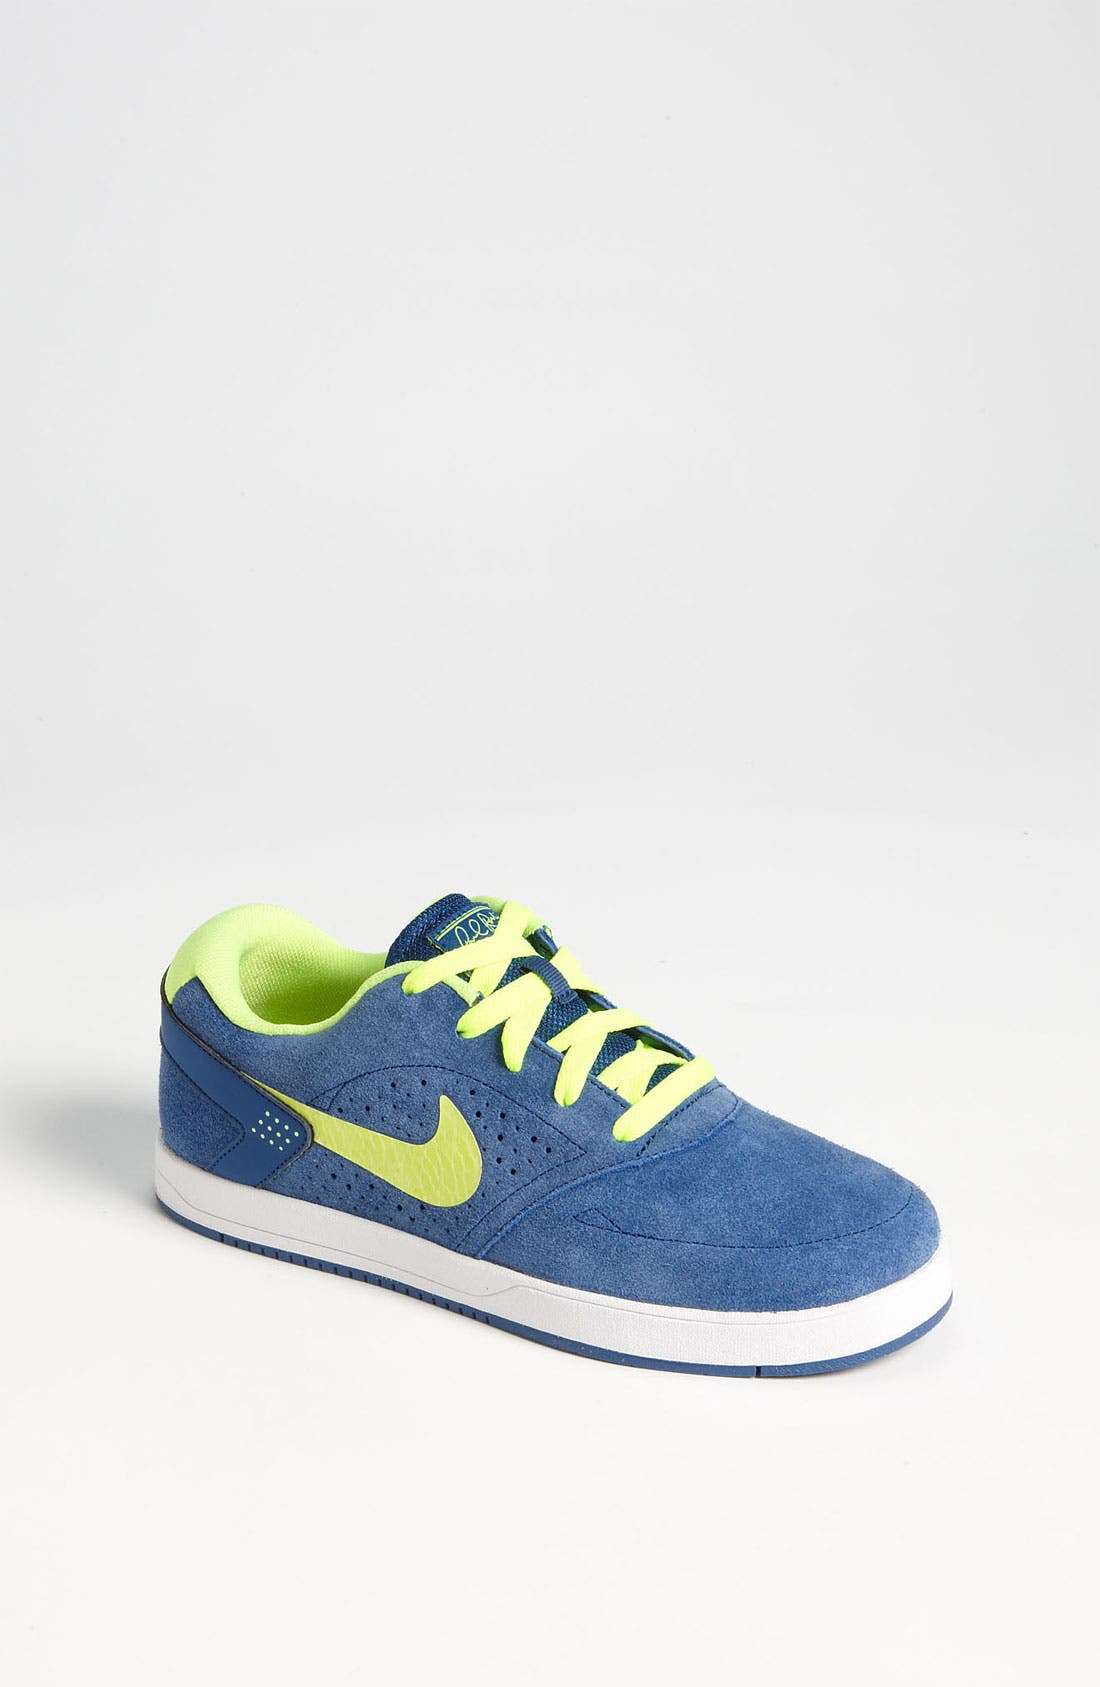 Main Image - Nike 'Paul Rodriguez 6' Sneaker (Toddler, Little Kid & Big Kid)